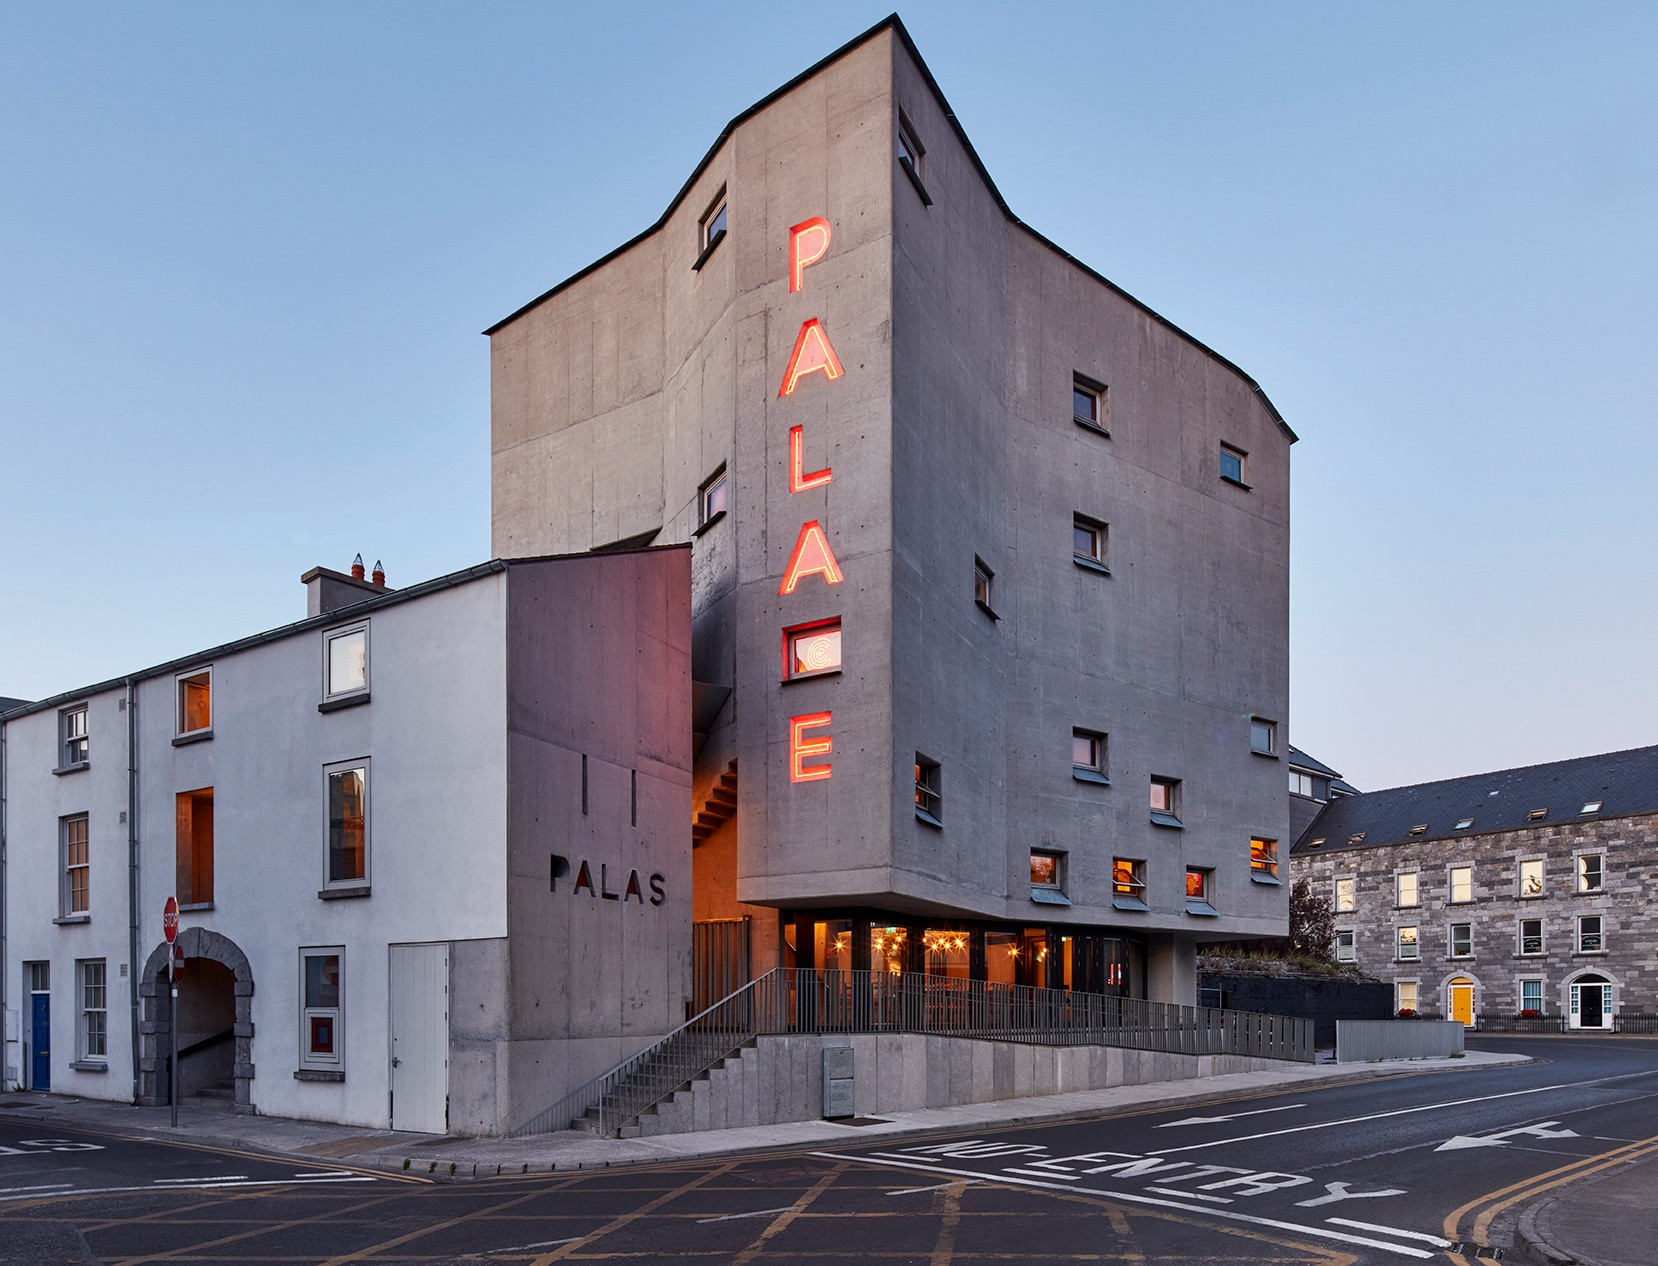 Galway's Pálás Shortlisted for 2018 World Architecture Awards